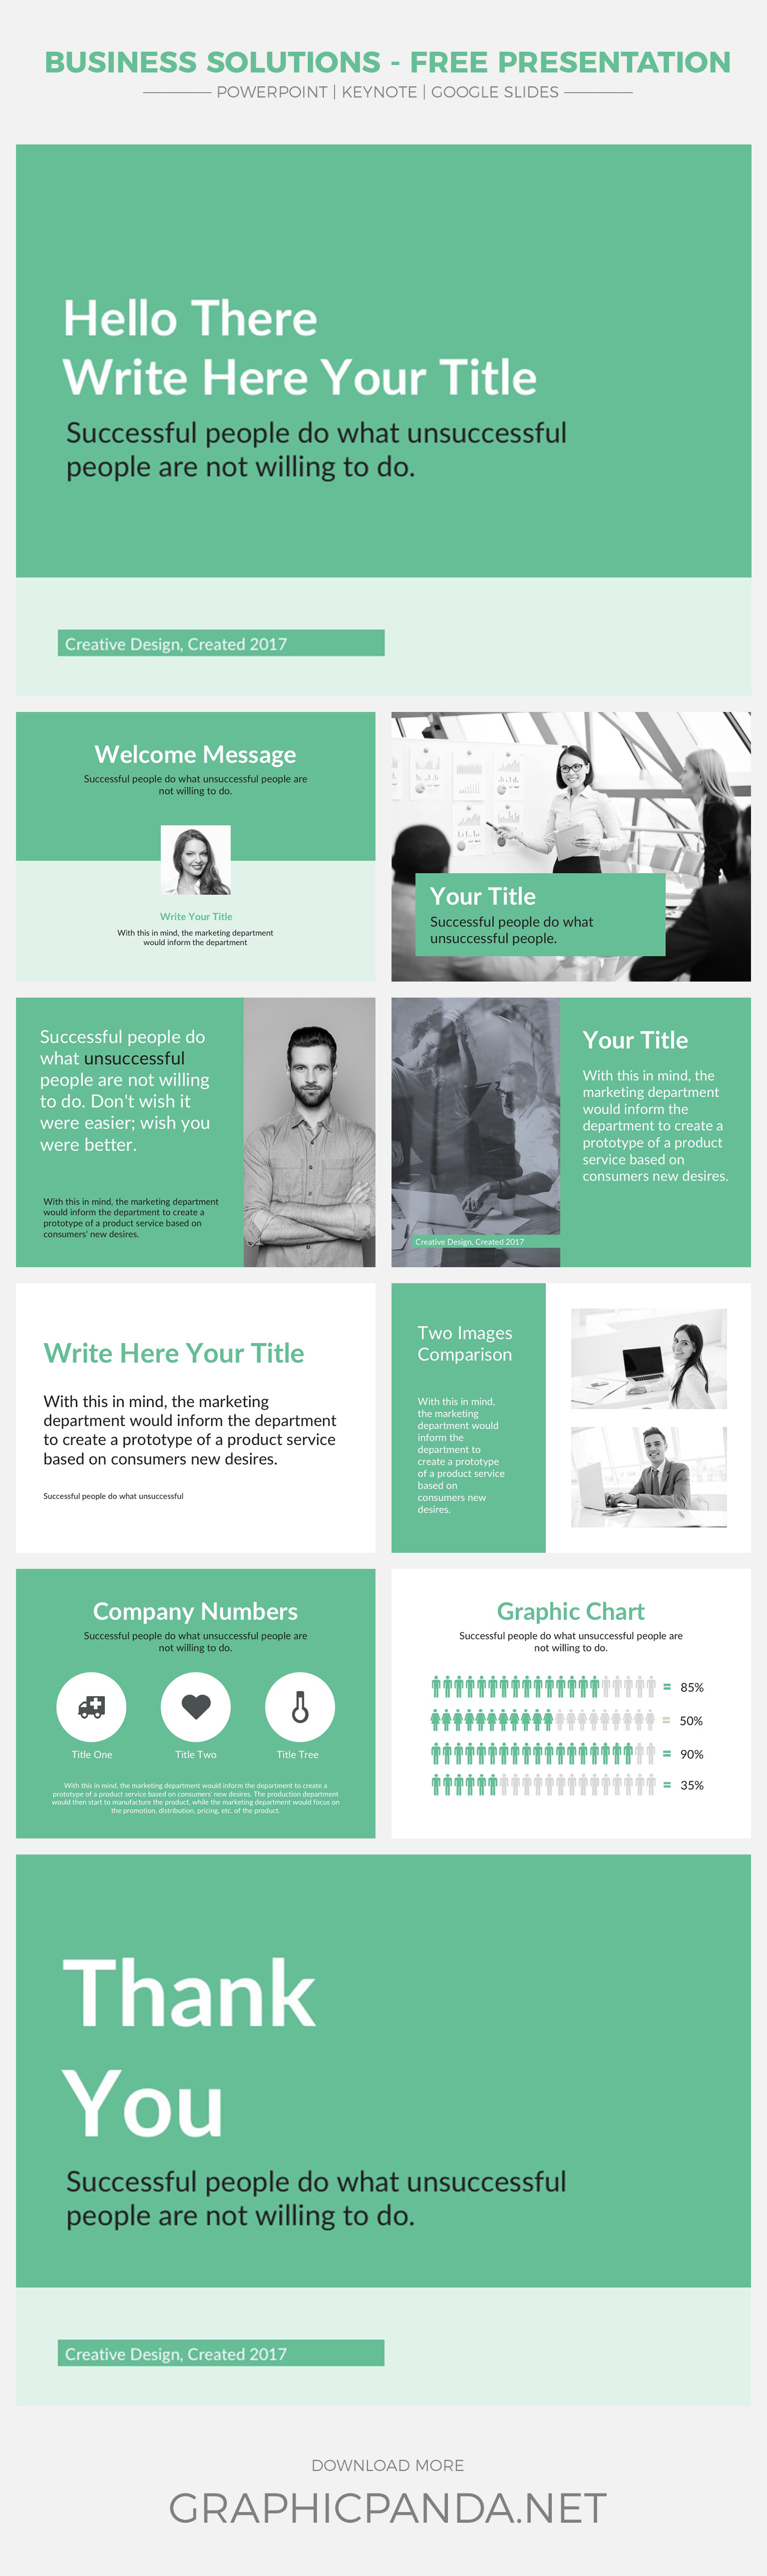 This free Business Solutions PowerPoint Template will help you influence your audience, clients and potential investors to take the action in the direction you are expecting. This template comes with many digital assets to make a clean and modern business presentation.